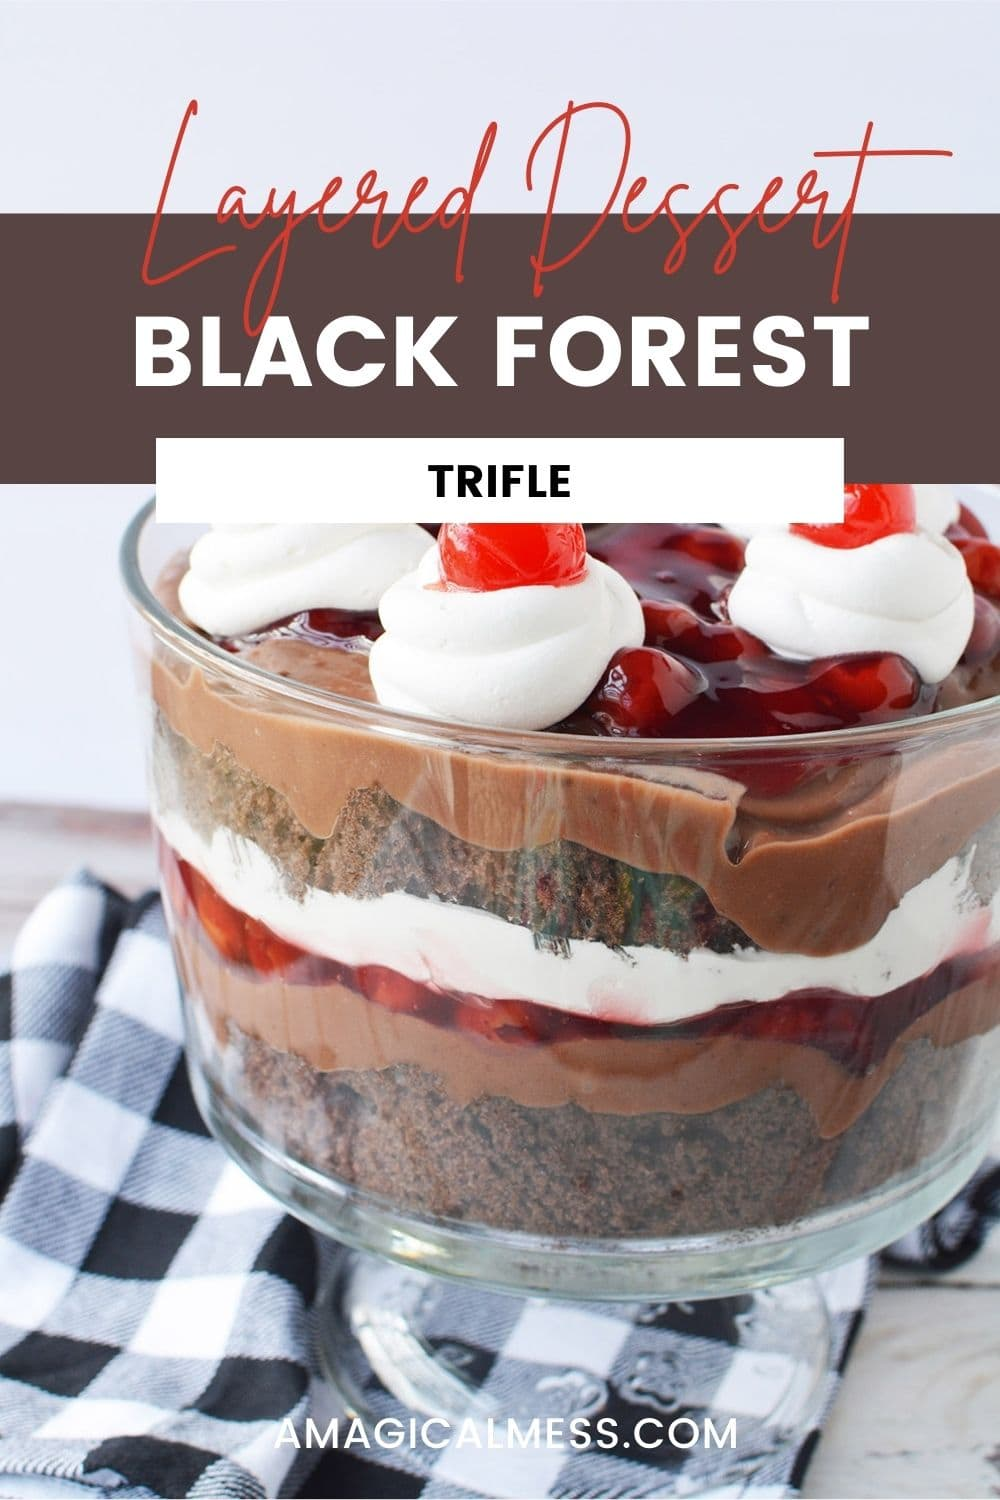 Layers of cake, whipped cream, and cherries in a trifle bowl.